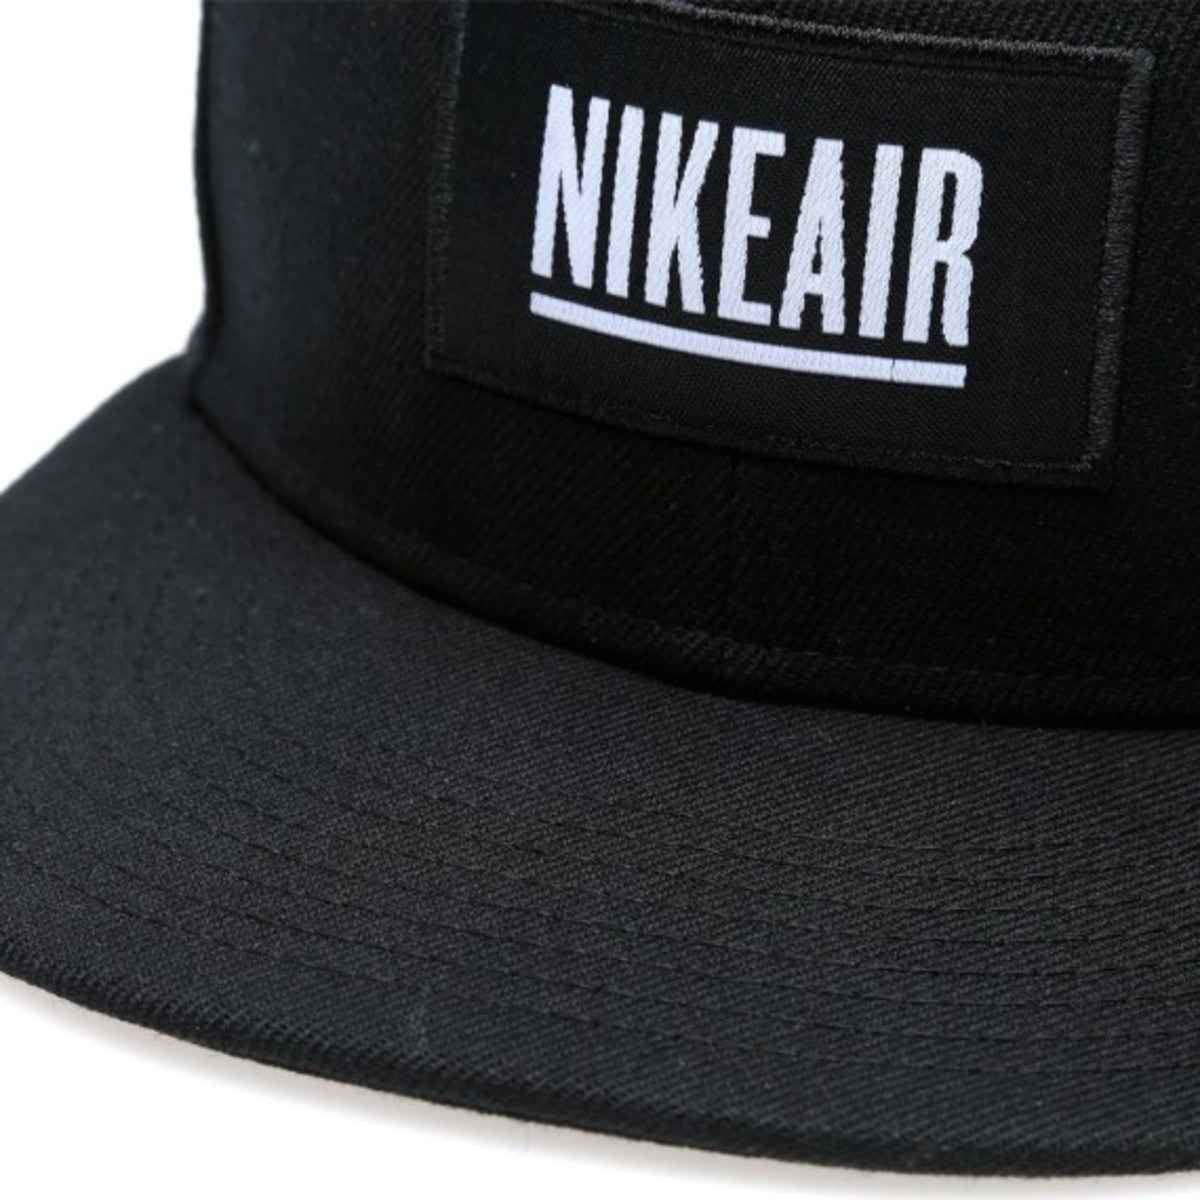 pigalle-x-nike-ppp-collection-release-reminder-47